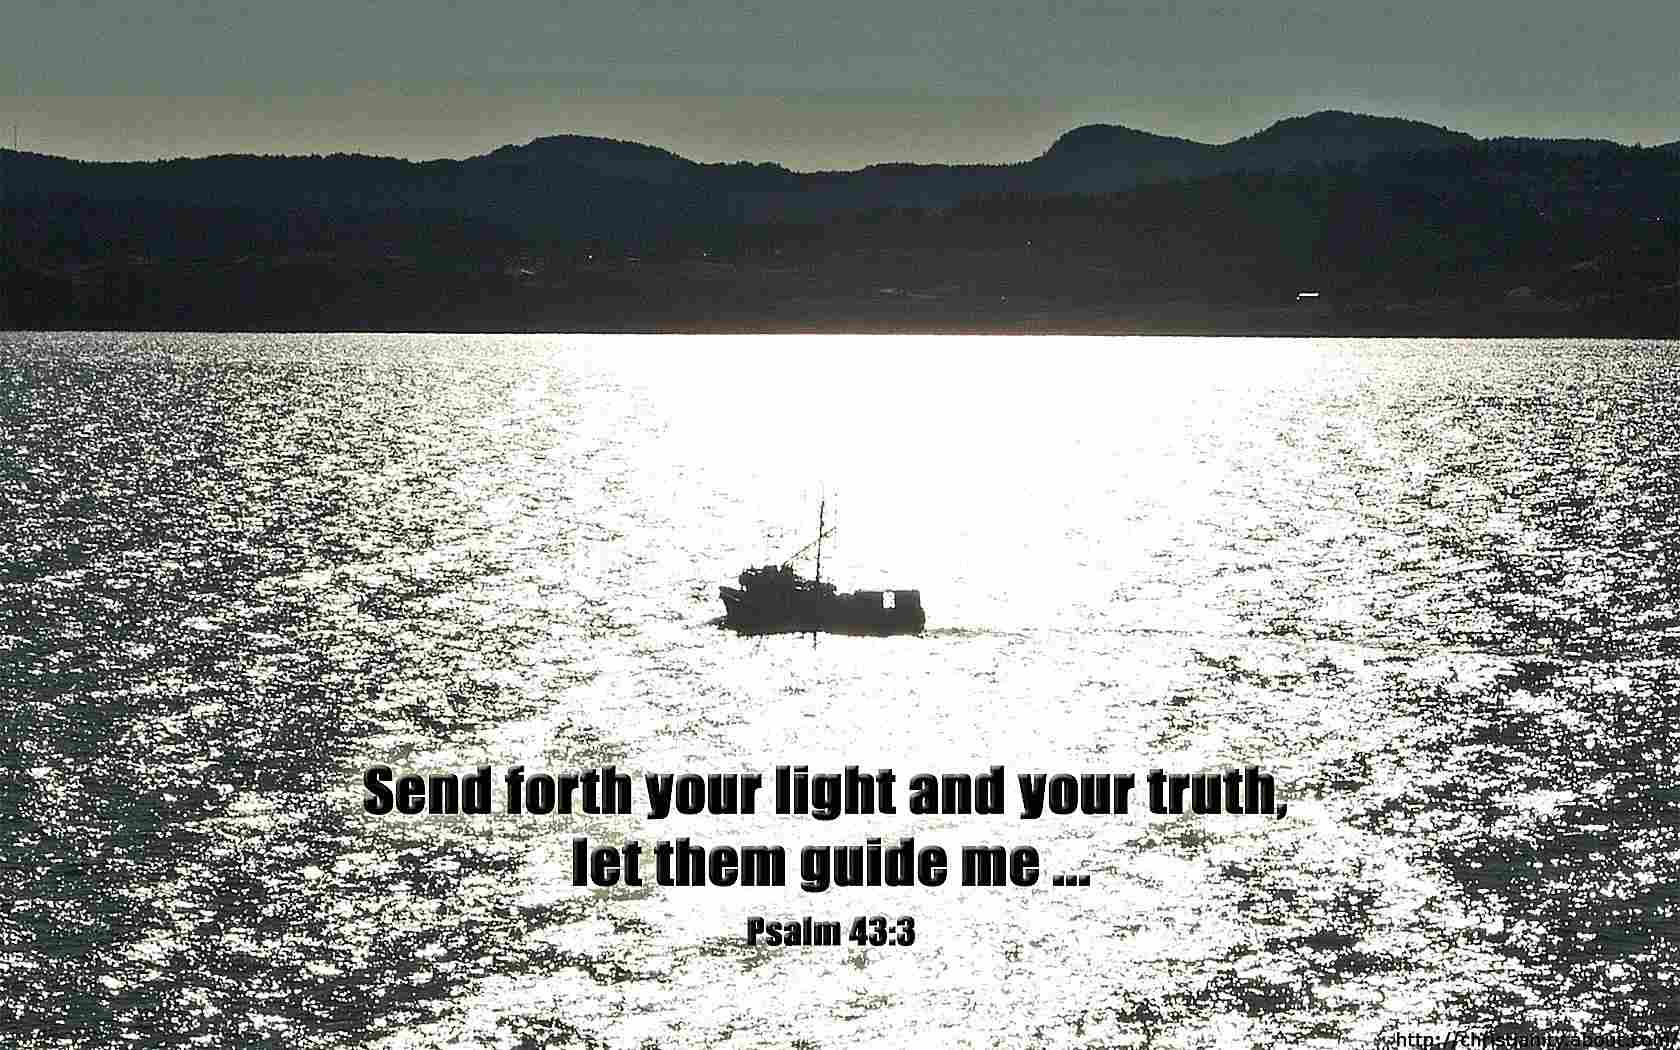 Light and Truth with bible verse